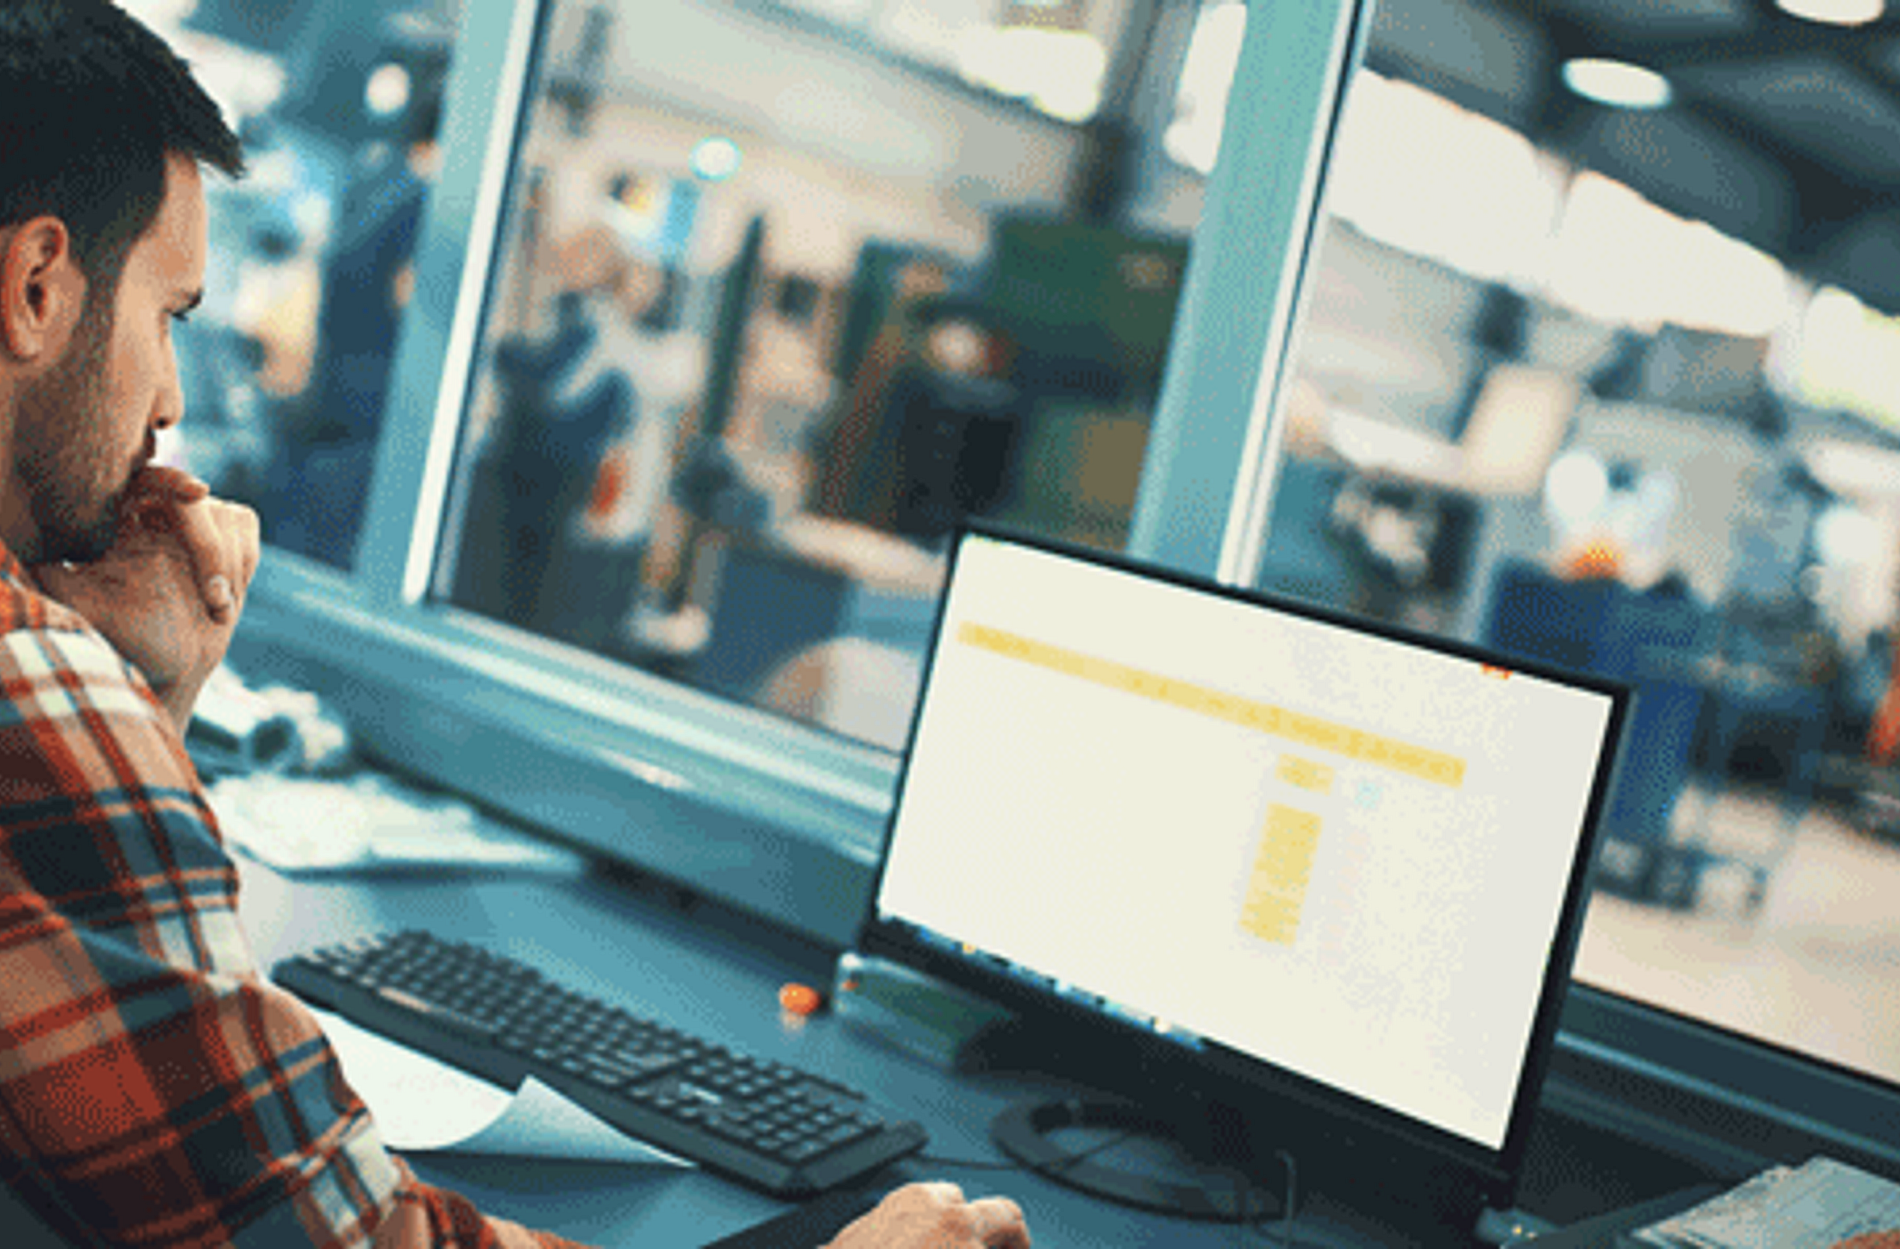 Man sitting at a manufacturing desk on a computer